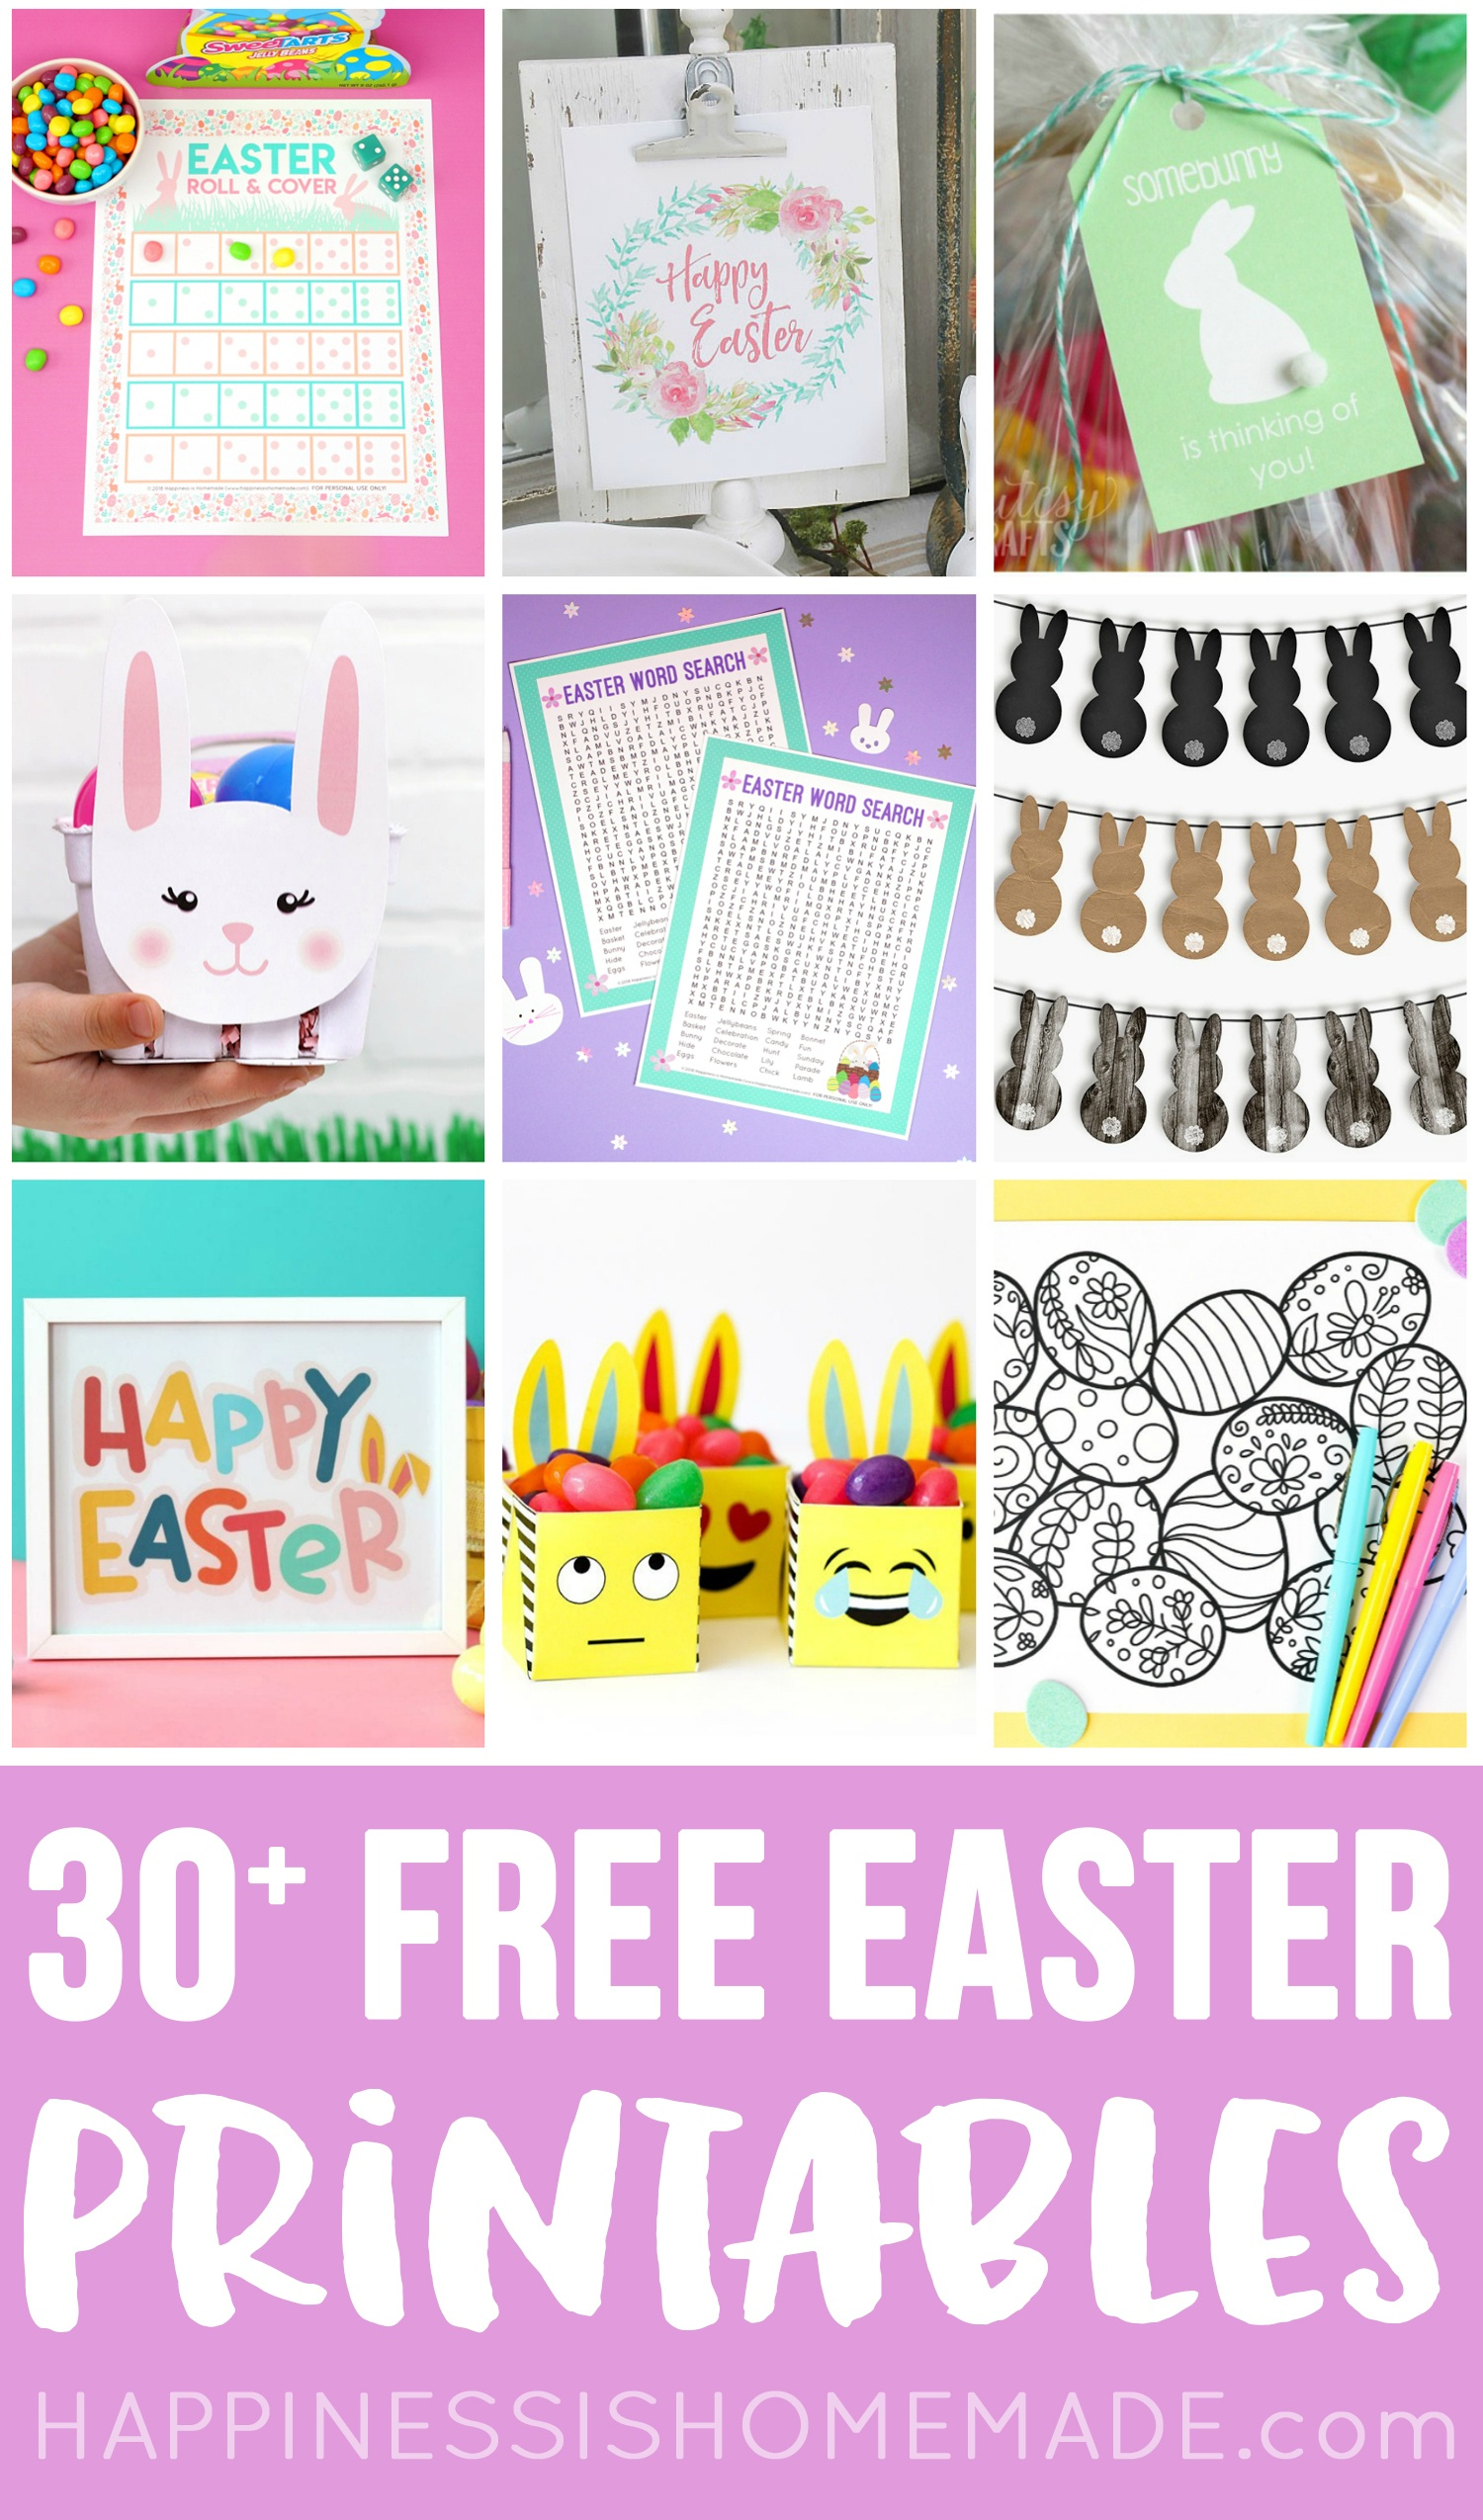 30+ Totally Free Easter Printables - Happiness Is Homemade - Free Printable Easter Images